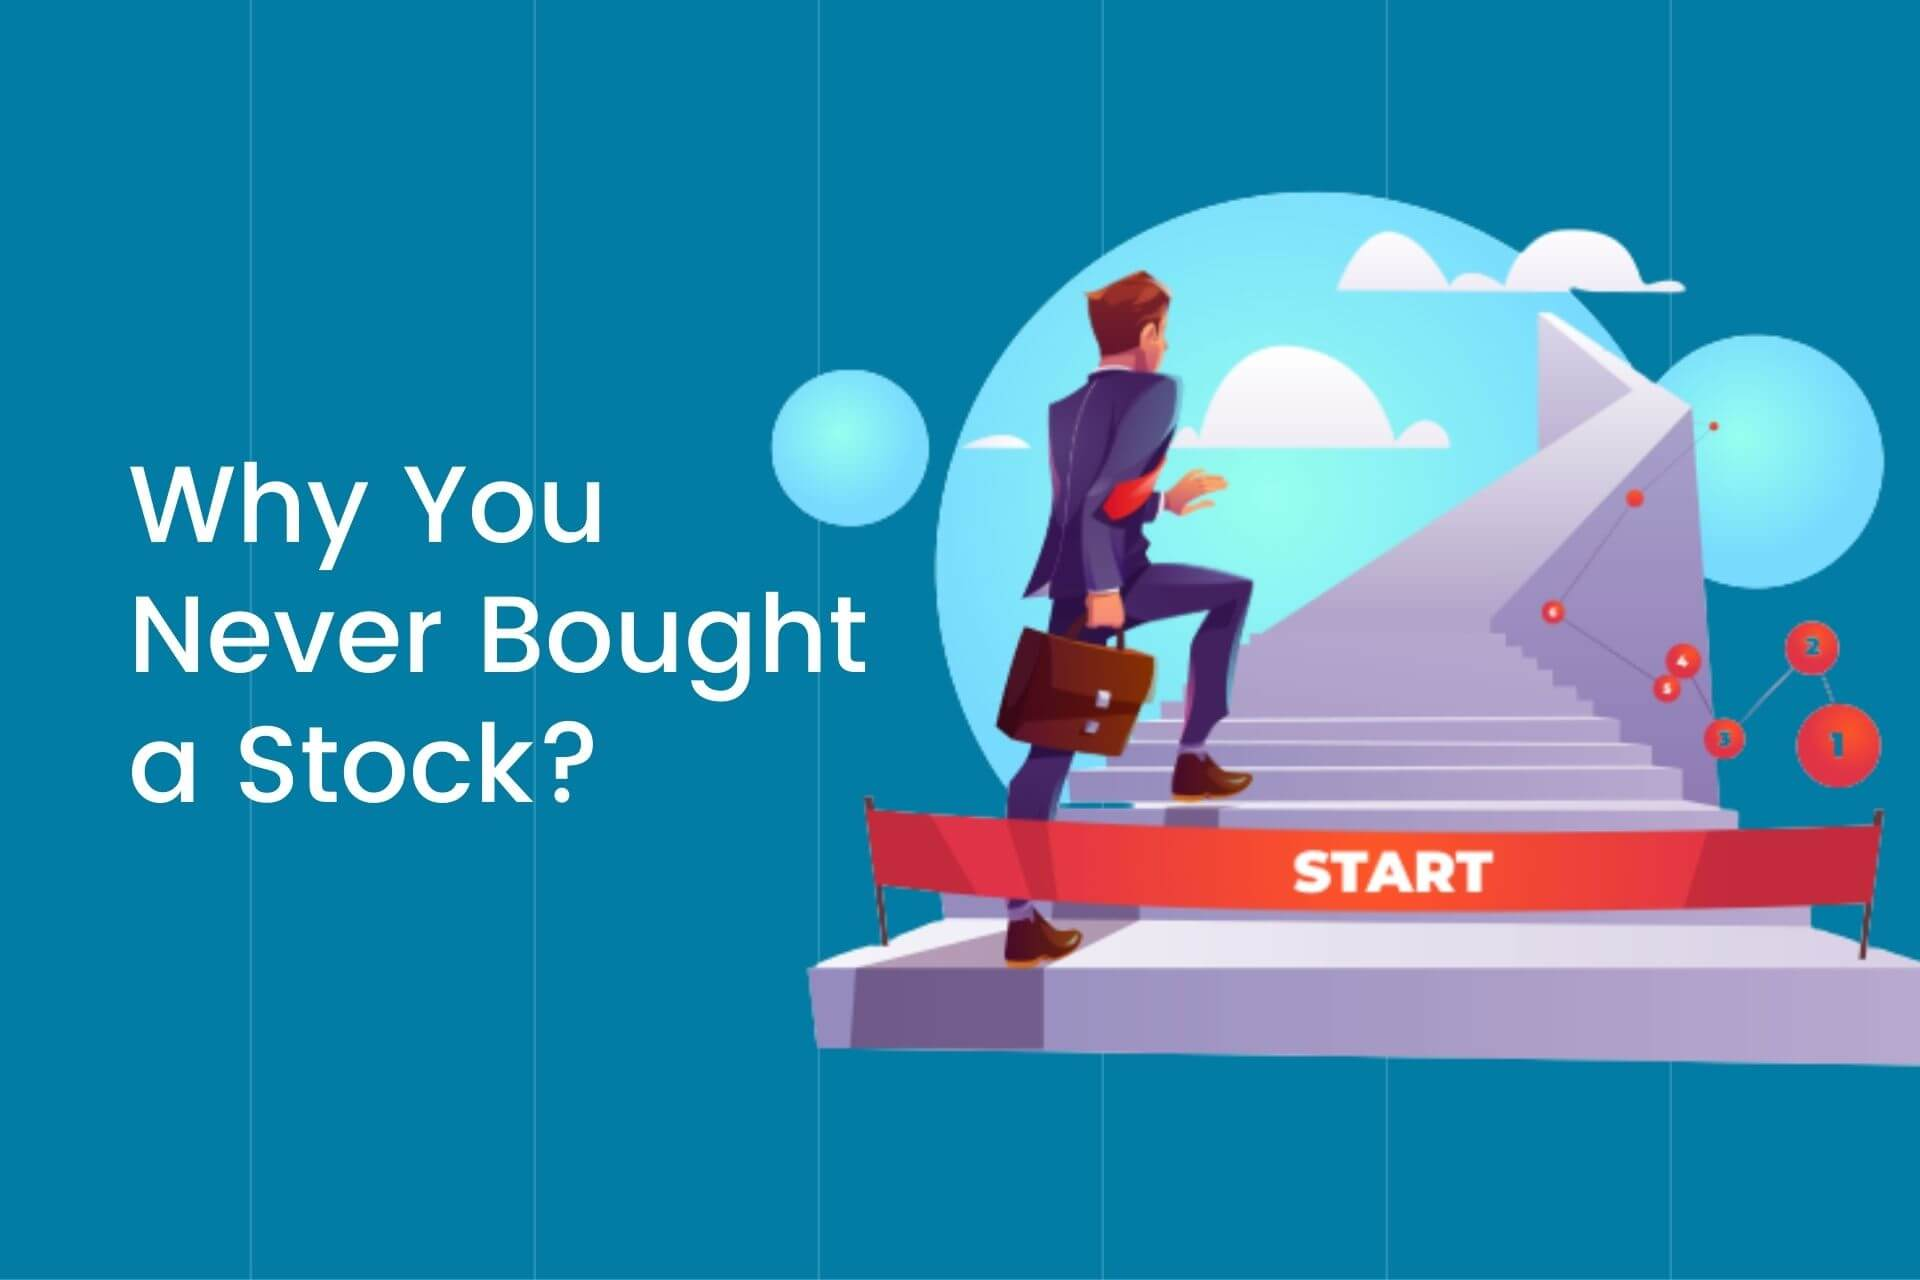 Why you never bought a stock